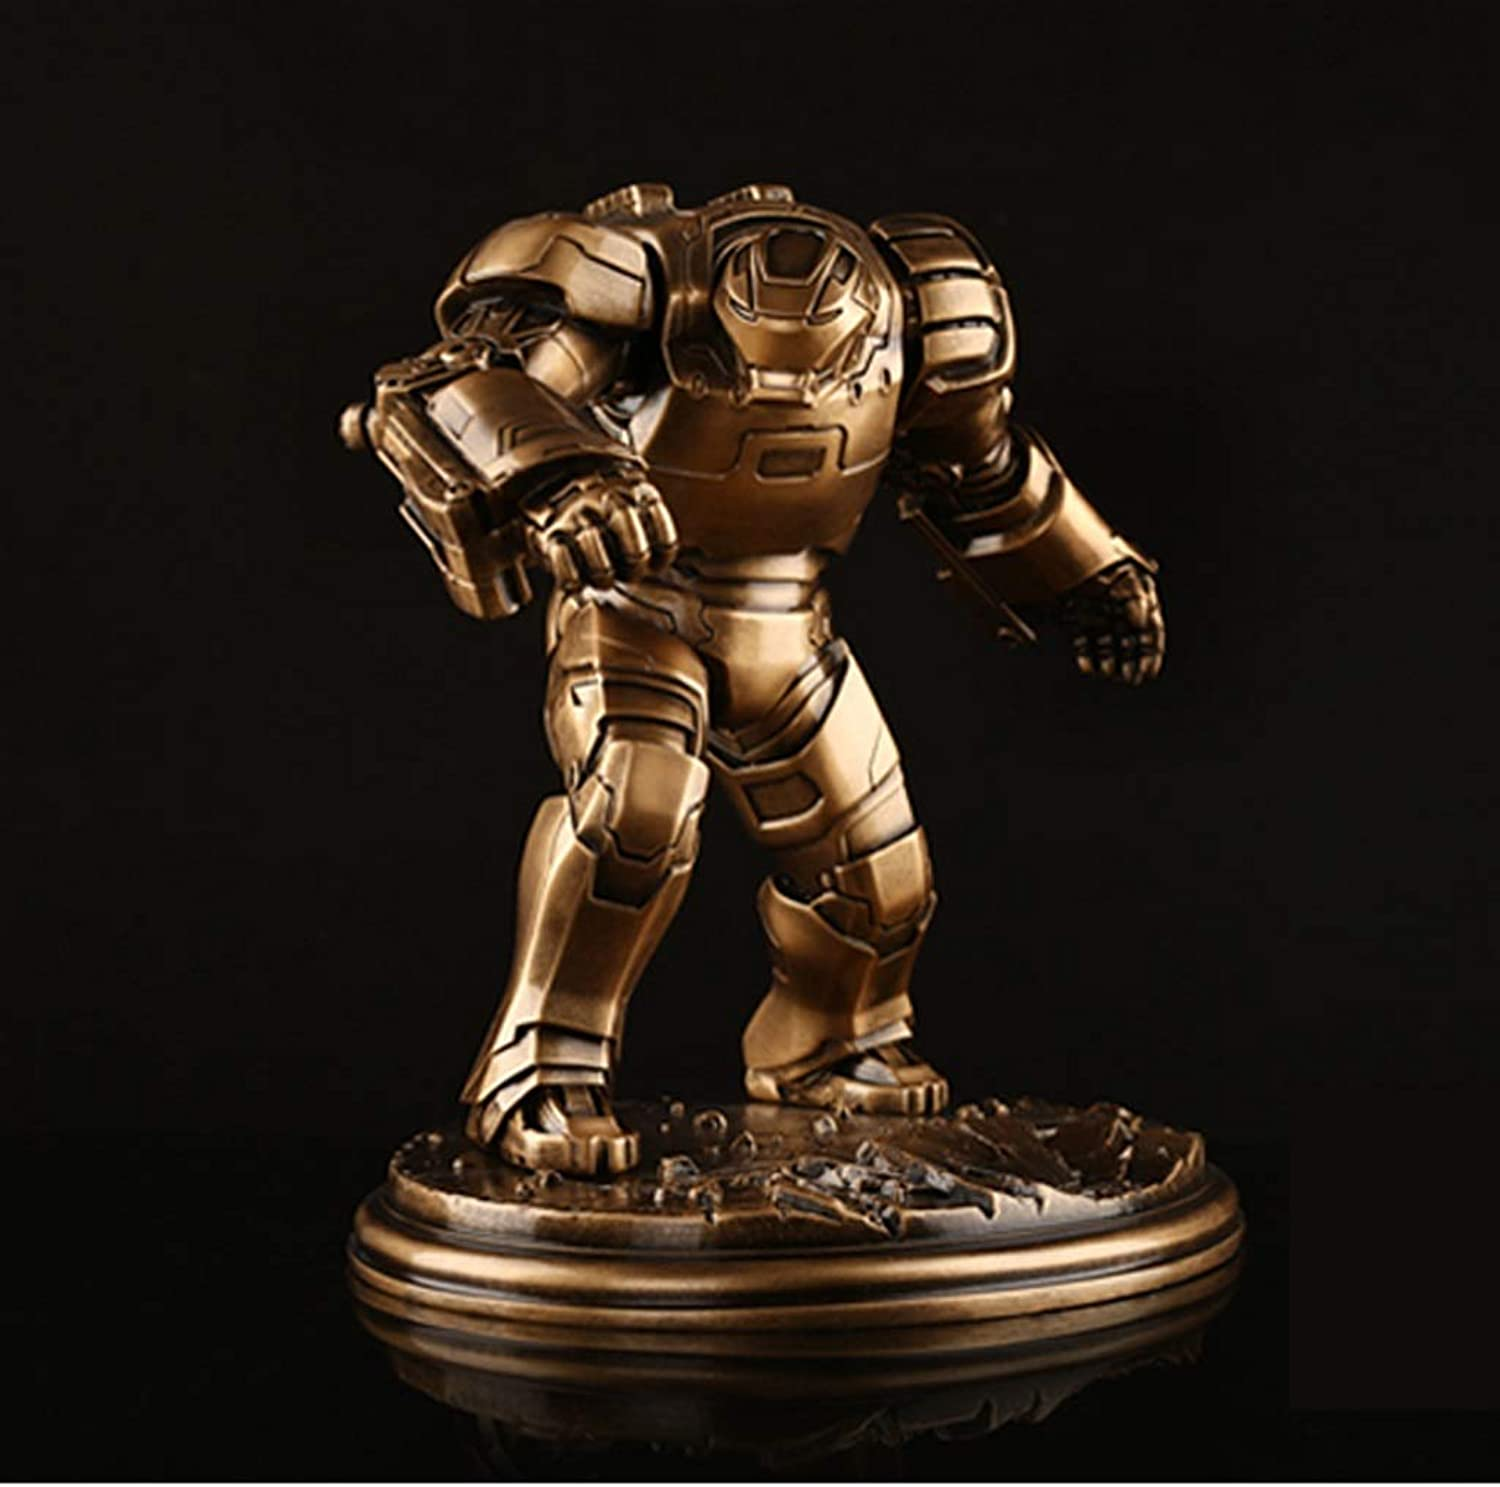 XJRHB Iron Man Qiu Zhe Allianz Iron Man Puppe Modell GK Harz Statue Anime Dekoration 28,5 cm